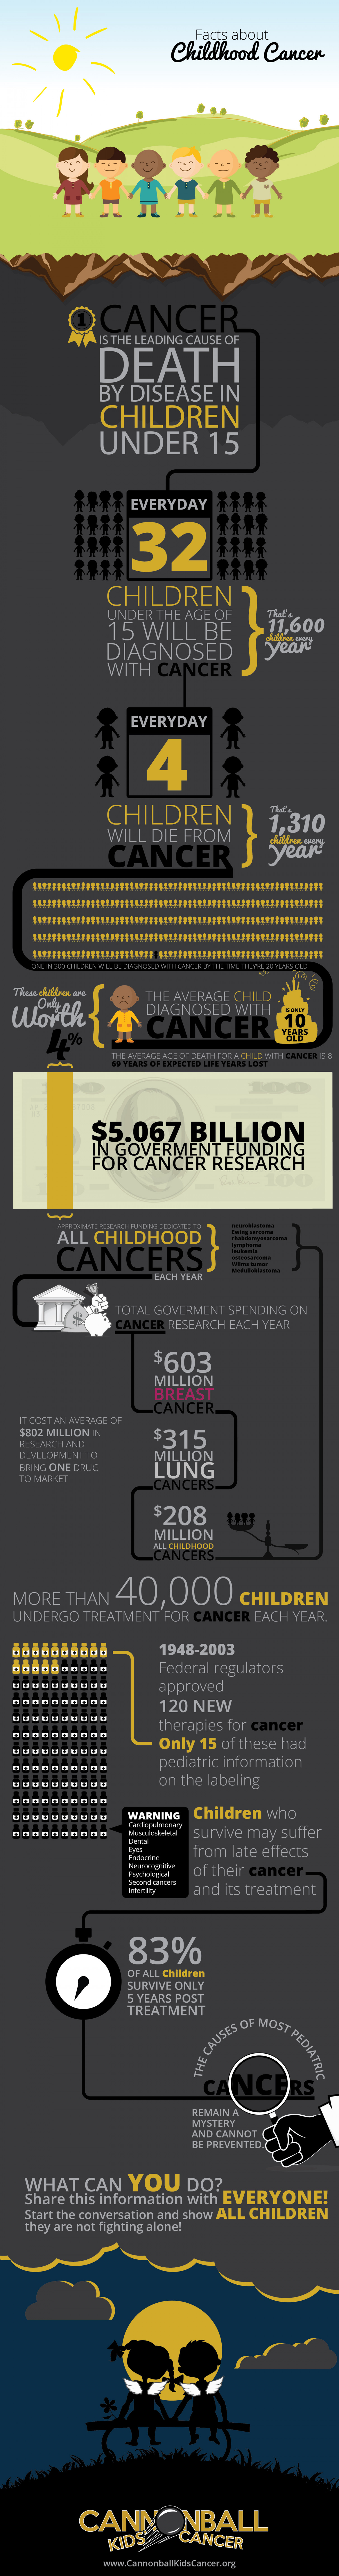 Facts About Childhood Cancer Infographic